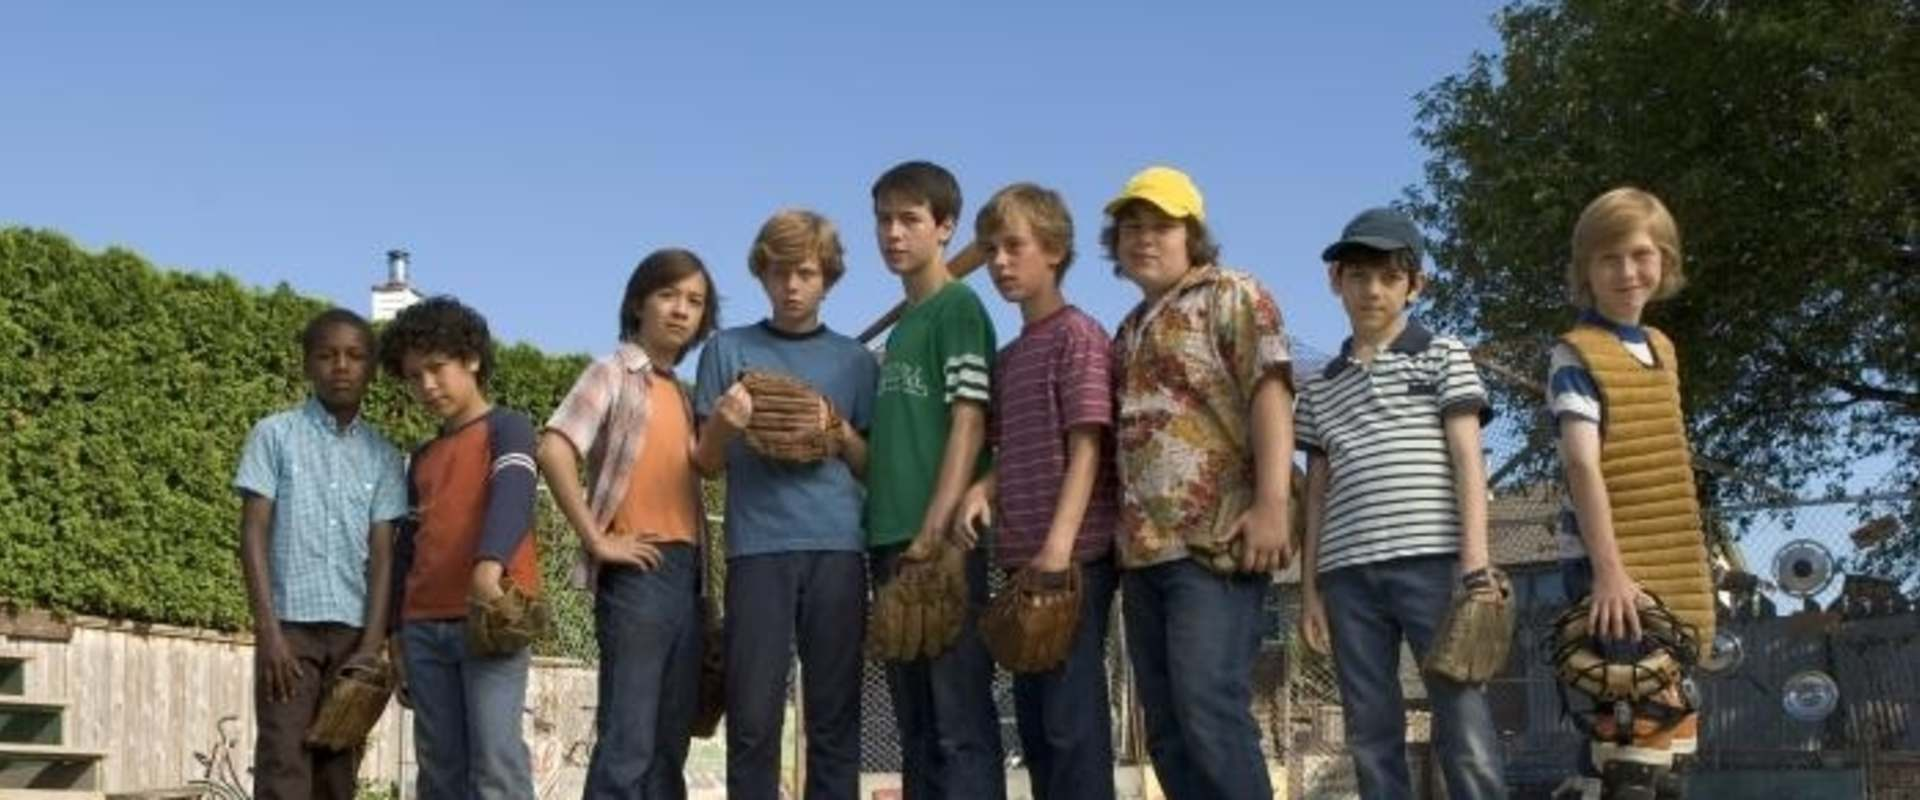 The Sandlot: Heading Home background 2